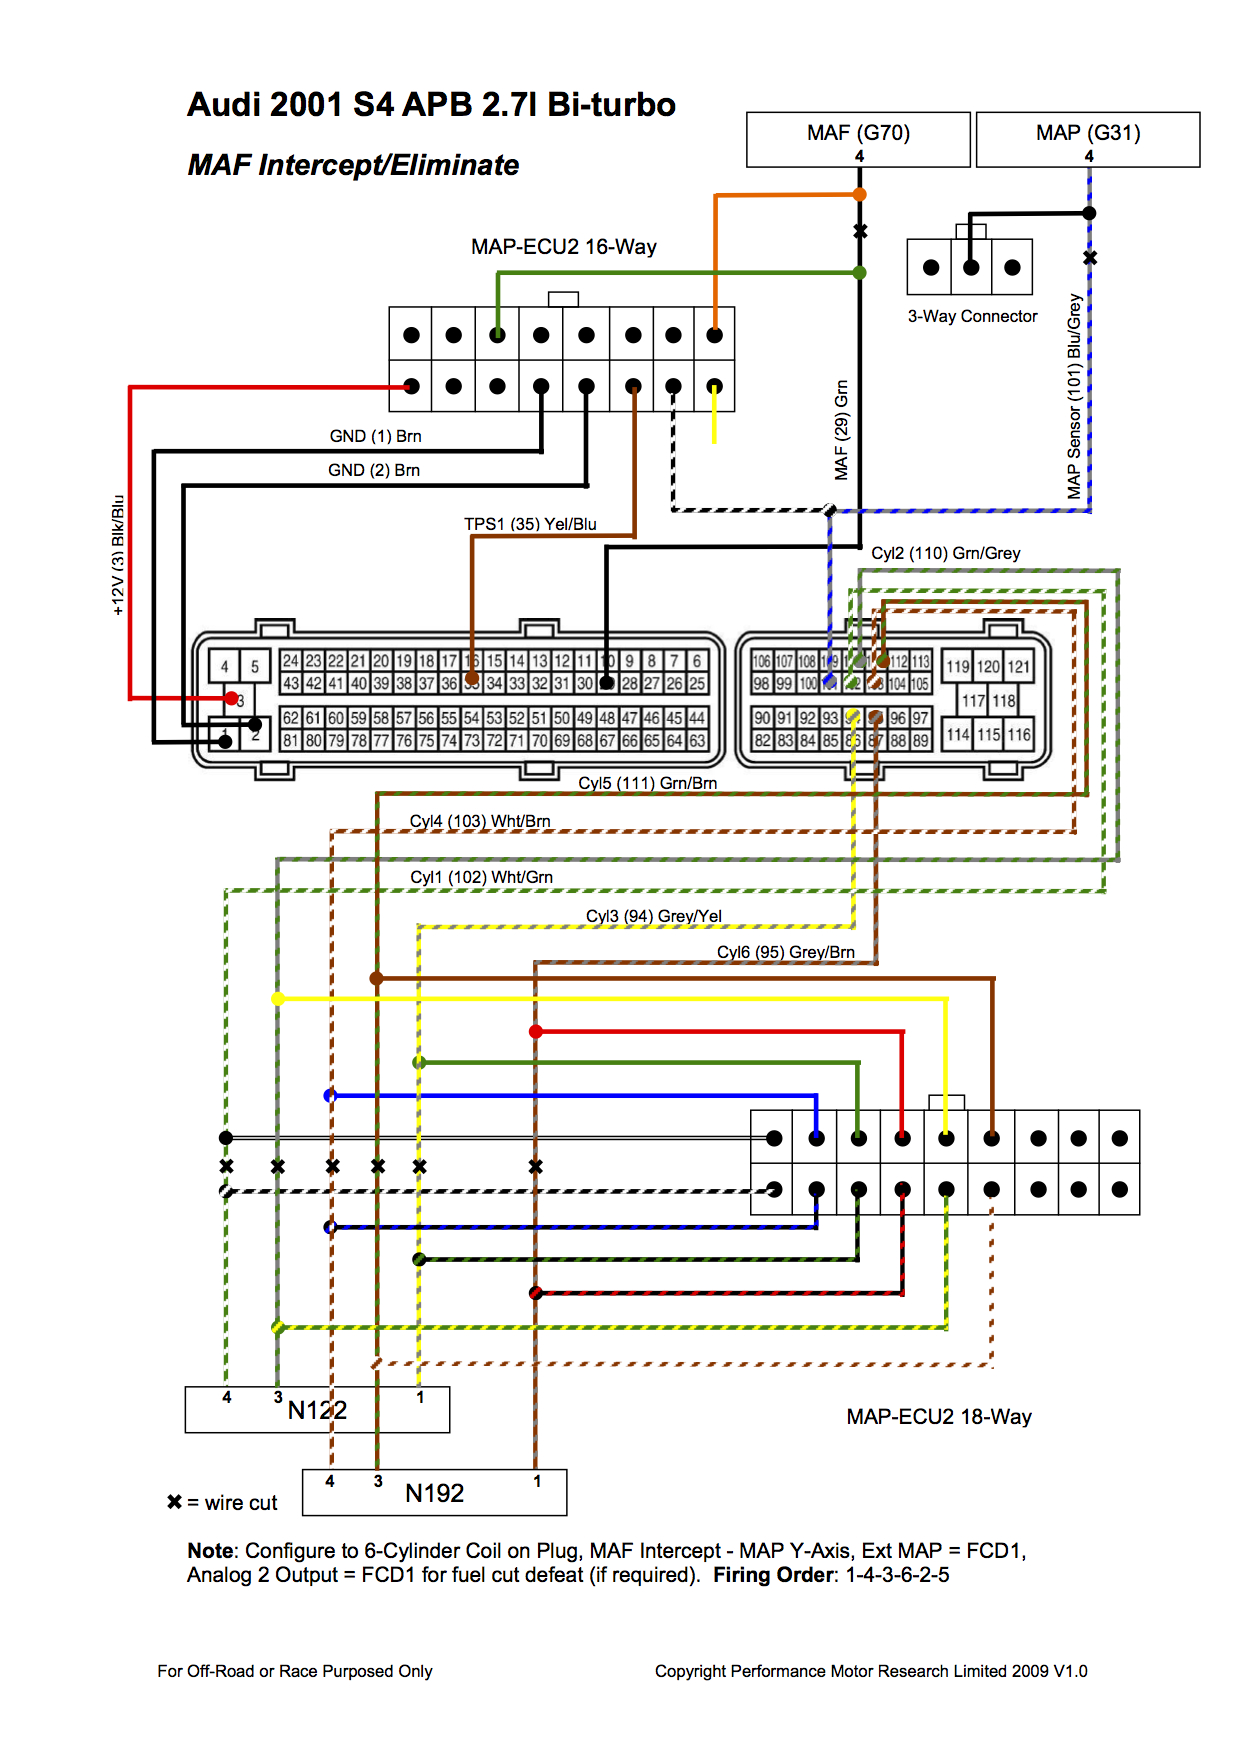 Audi S4 20011 mapecu wiring diagrams audi, bmw, ford, honda, lexus, nissan, toyota 1jz vvti wiring diagram pdf at couponss.co